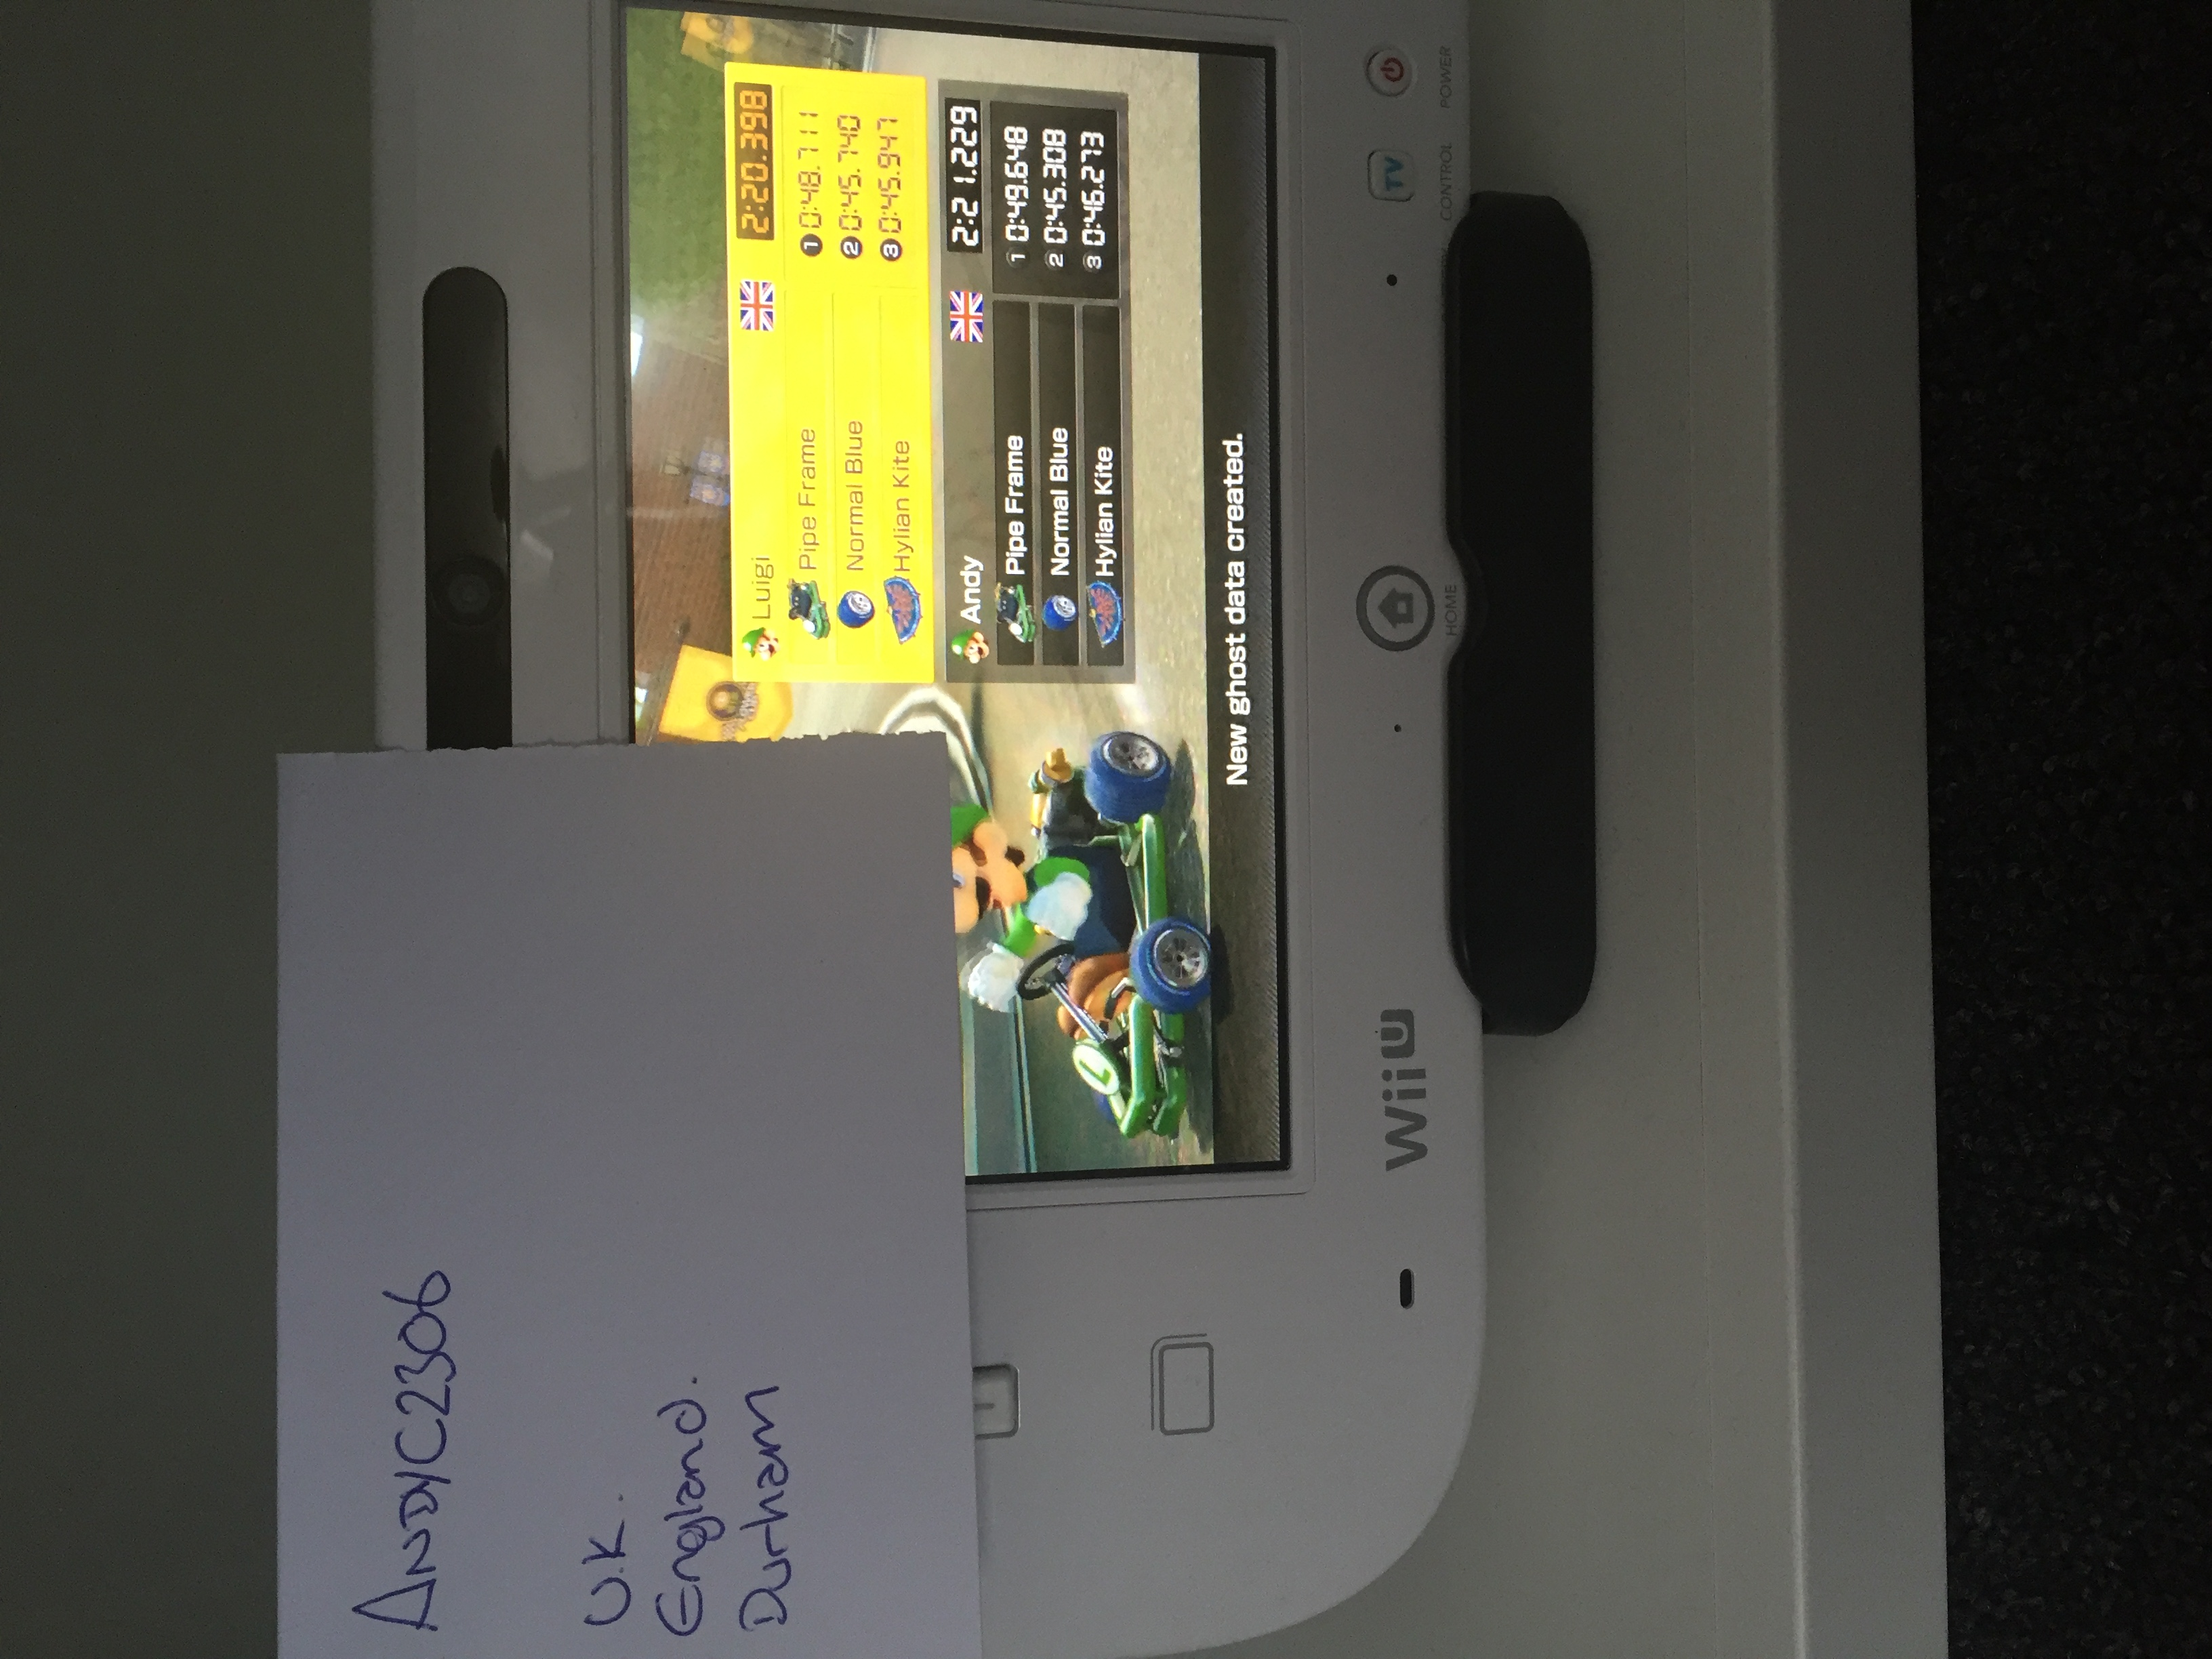 Mario Kart 8: Time Trials: Toad Harbour [Best Time] time of 0:02:20.398